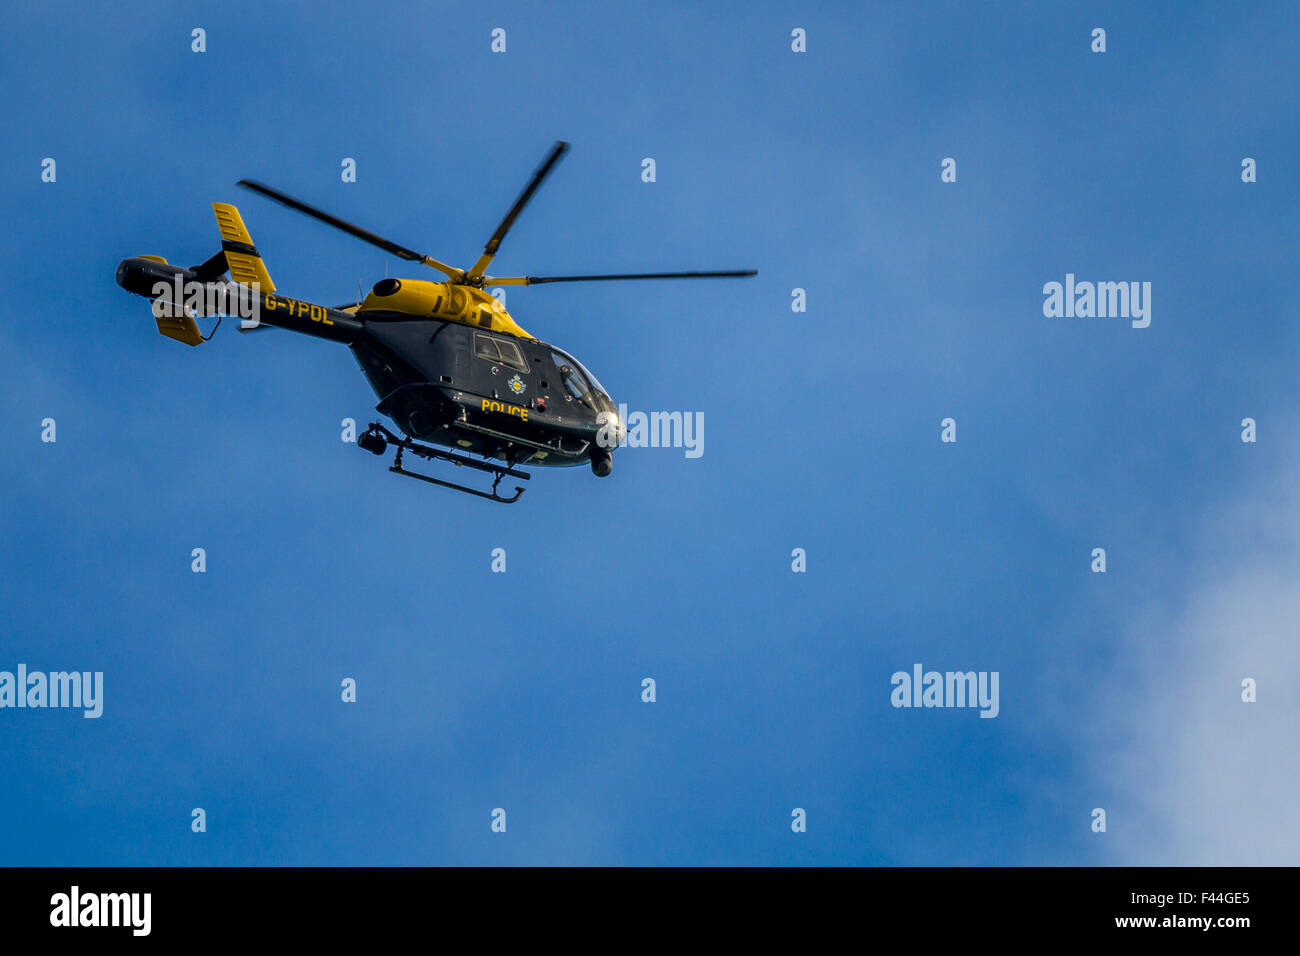 Police search helicopter assisting with an 'ongoing incident' at Burley Woodhead - Stock Image